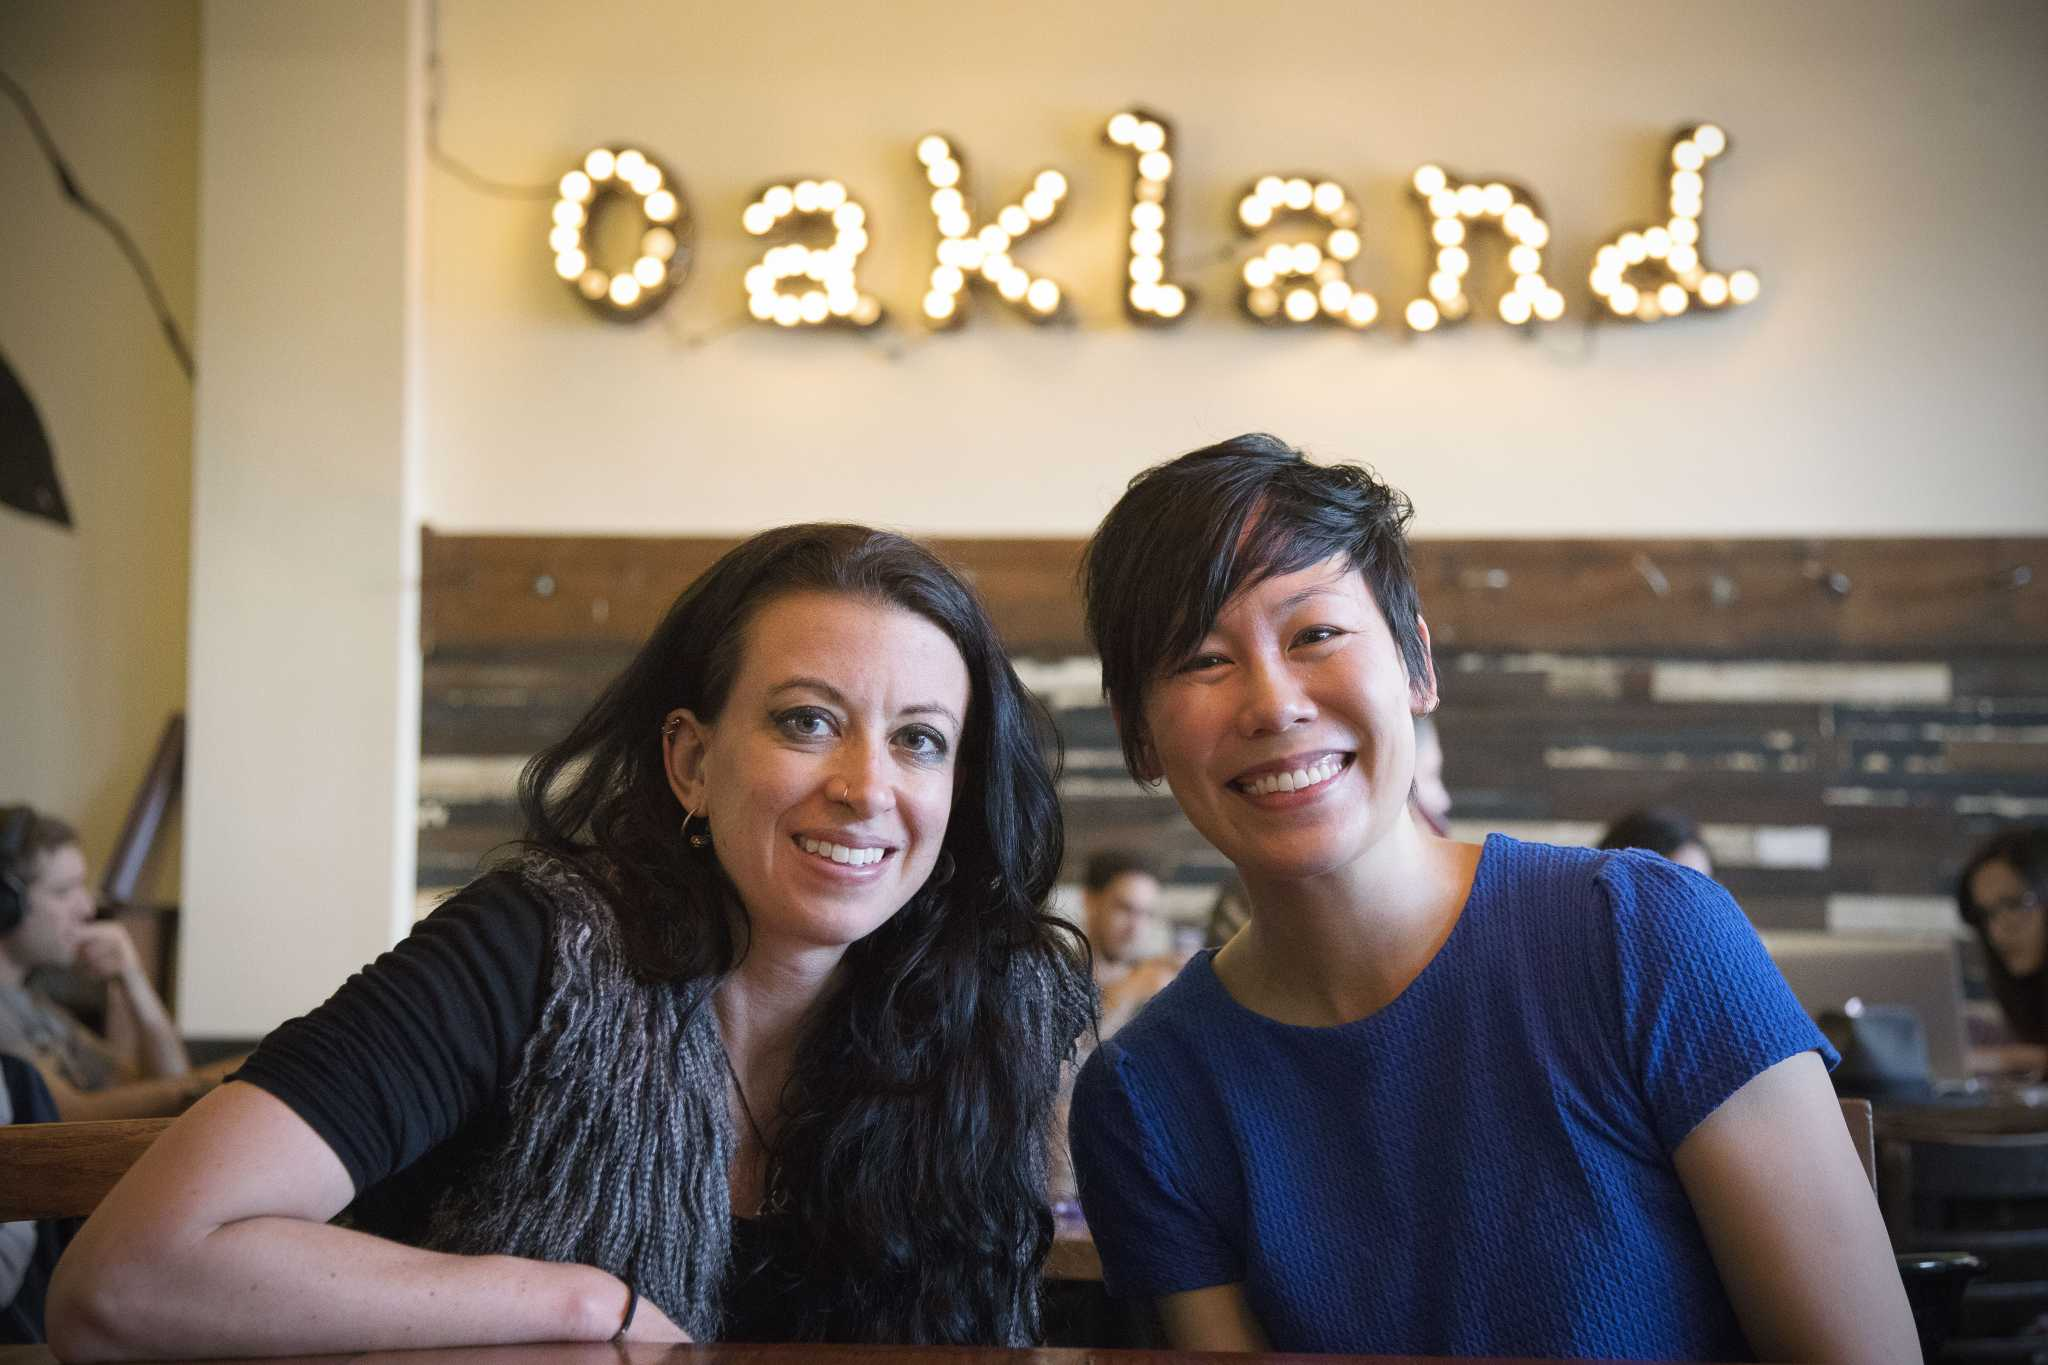 Co-founders of The Escapery, Carson Beker (left) and Nancy Au (right) pose for a portrait at Arbor Cafe in Oakland, Calif. on Sunday, Nov. 20, 2016. The Escapery hosts creative writing workshops at cafes and other community spaces in San Francisco and Oakland. (Steven Ho/Xpress)